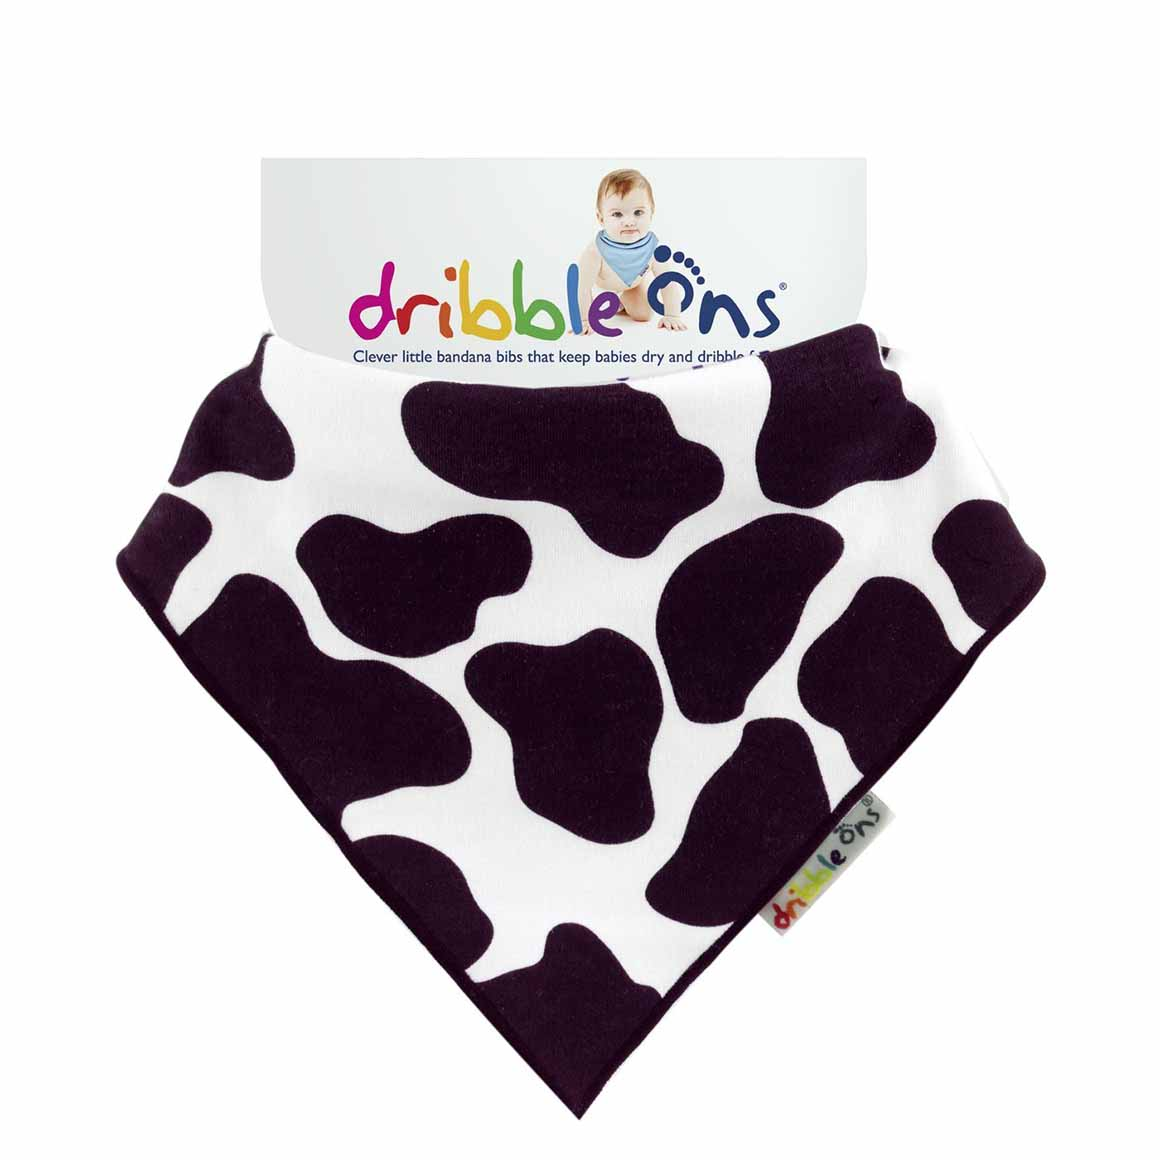 DRIBBLE ONS Cow Print | Trada Marketplace